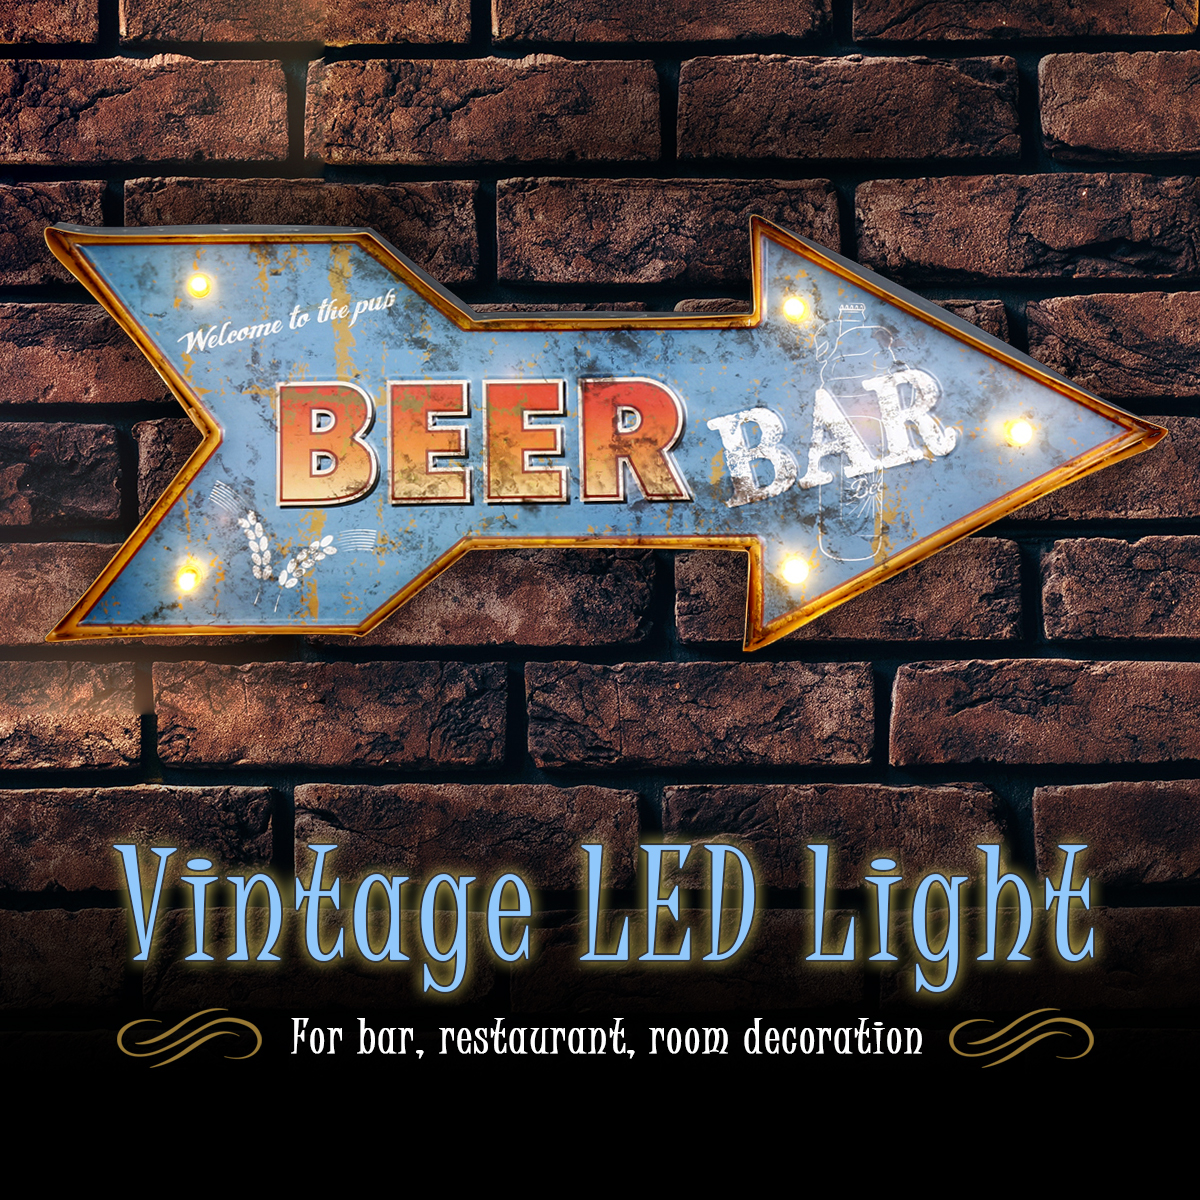 LED Mental Light Vintage Arrow Beer Sign Bar Game Room Wall Hangings Decorations Home Decor фонарь кемпинговый navigator 94 948 npt ca06 3aa светодиодный